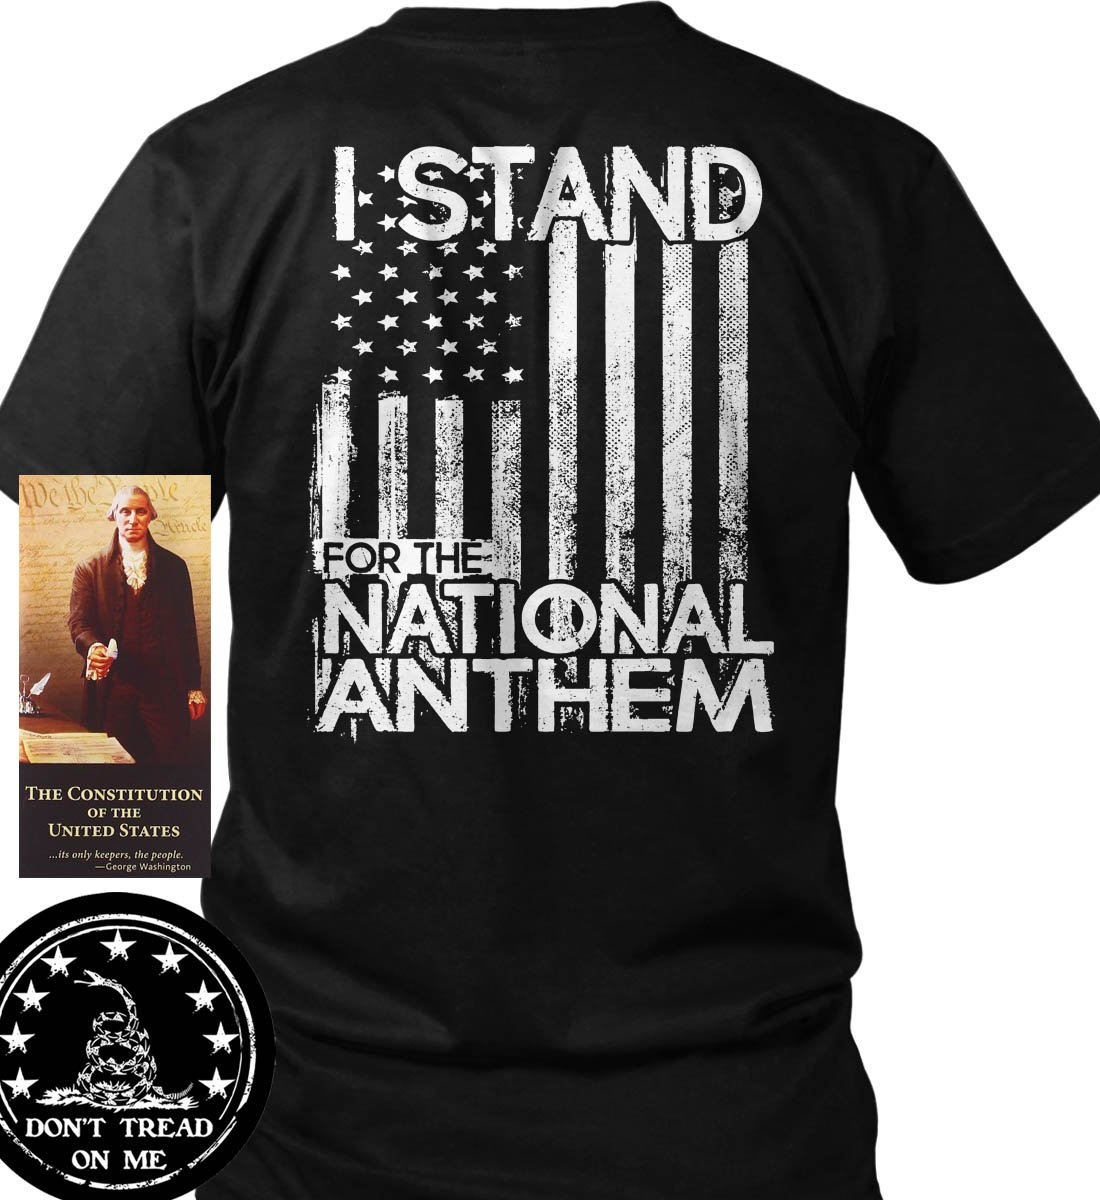 Sons Of Liberty I Stand For The National Anthem. T-Shirt. Made In USA